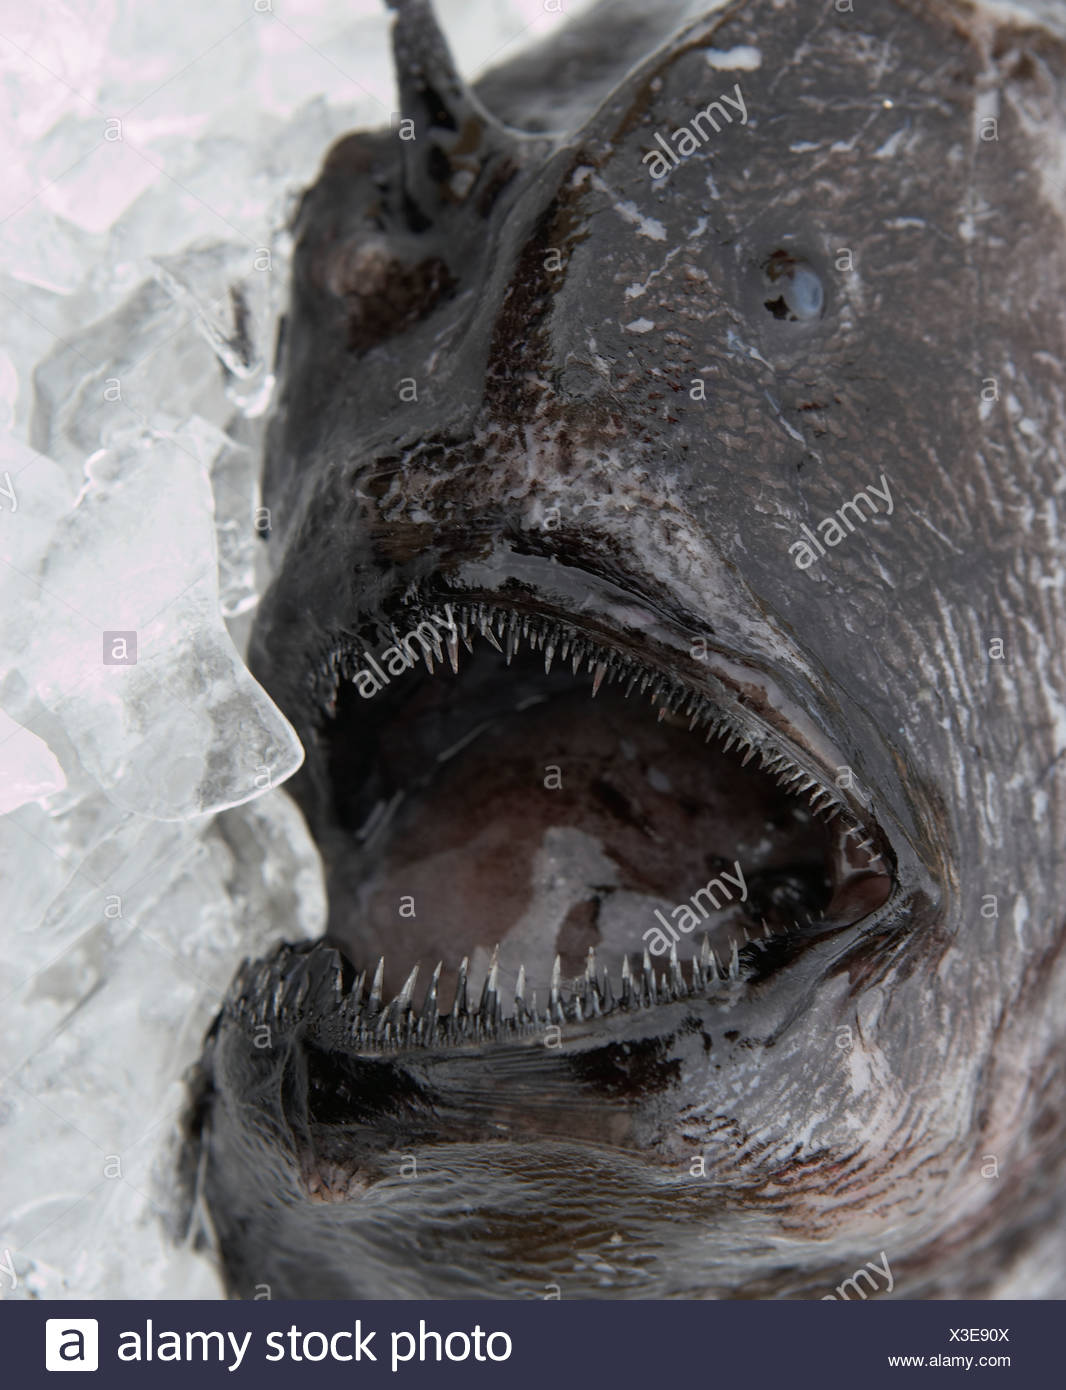 Strange looking fish named, Fangtooth (Anoplogaster cornuta), from North Atlantic Ocean, Iceland - Stock Image